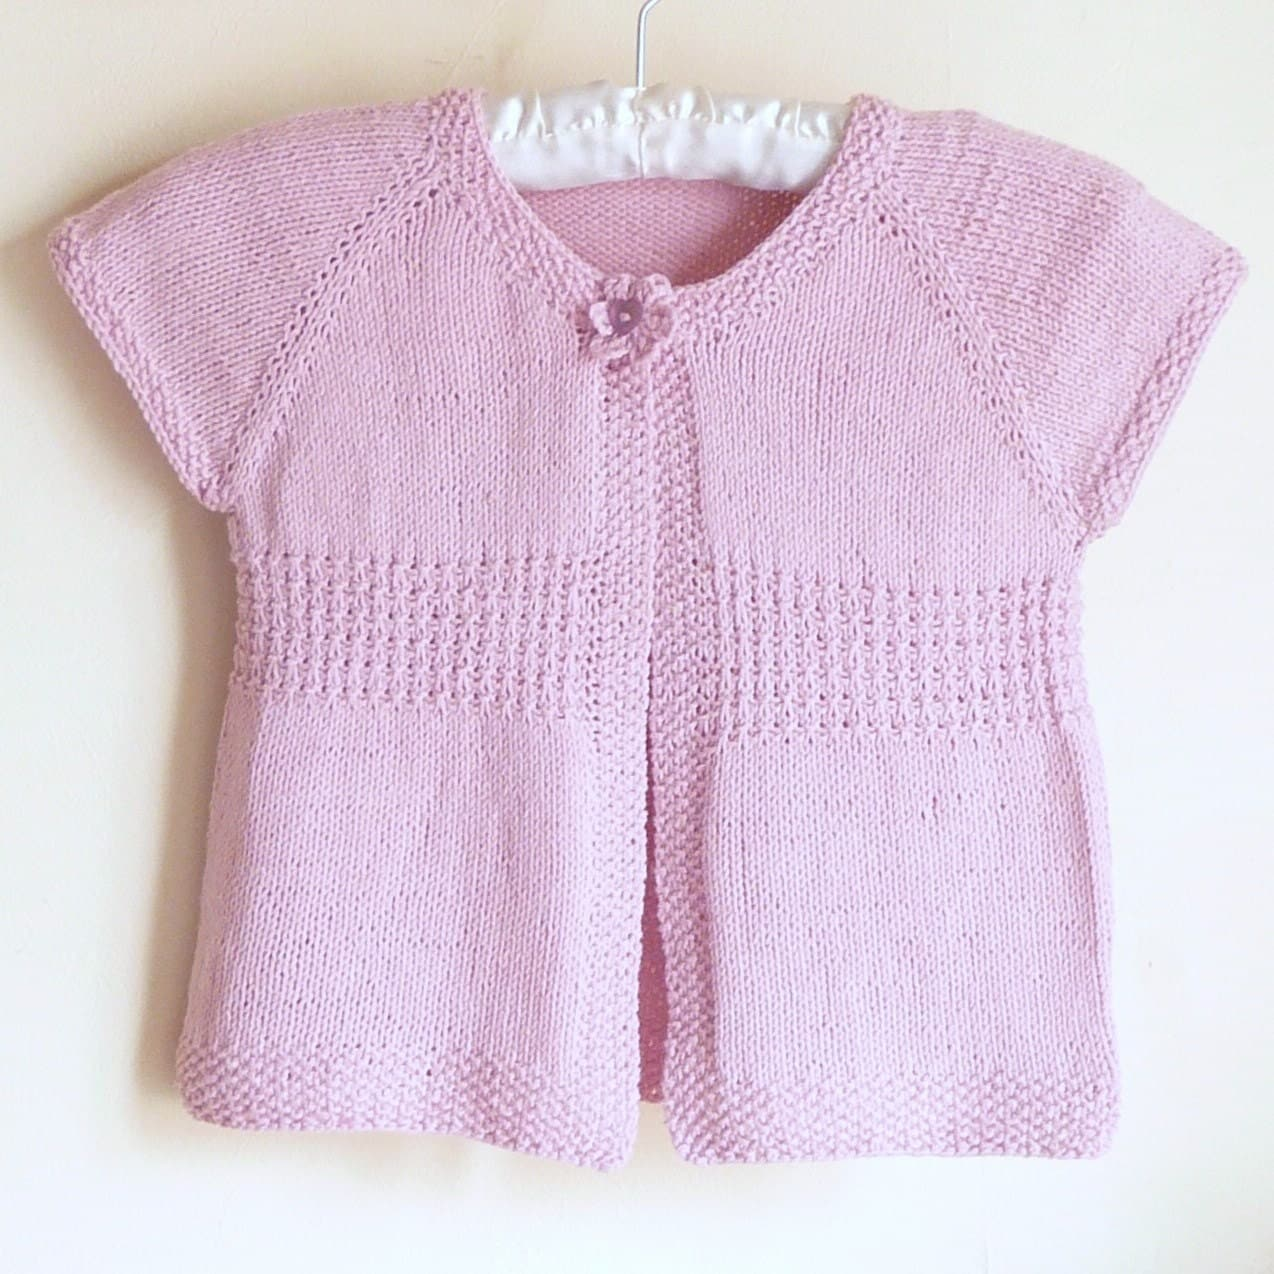 Knitting PATTERN Seamless Top Down Baby Girl CARDIGAN by ceradka